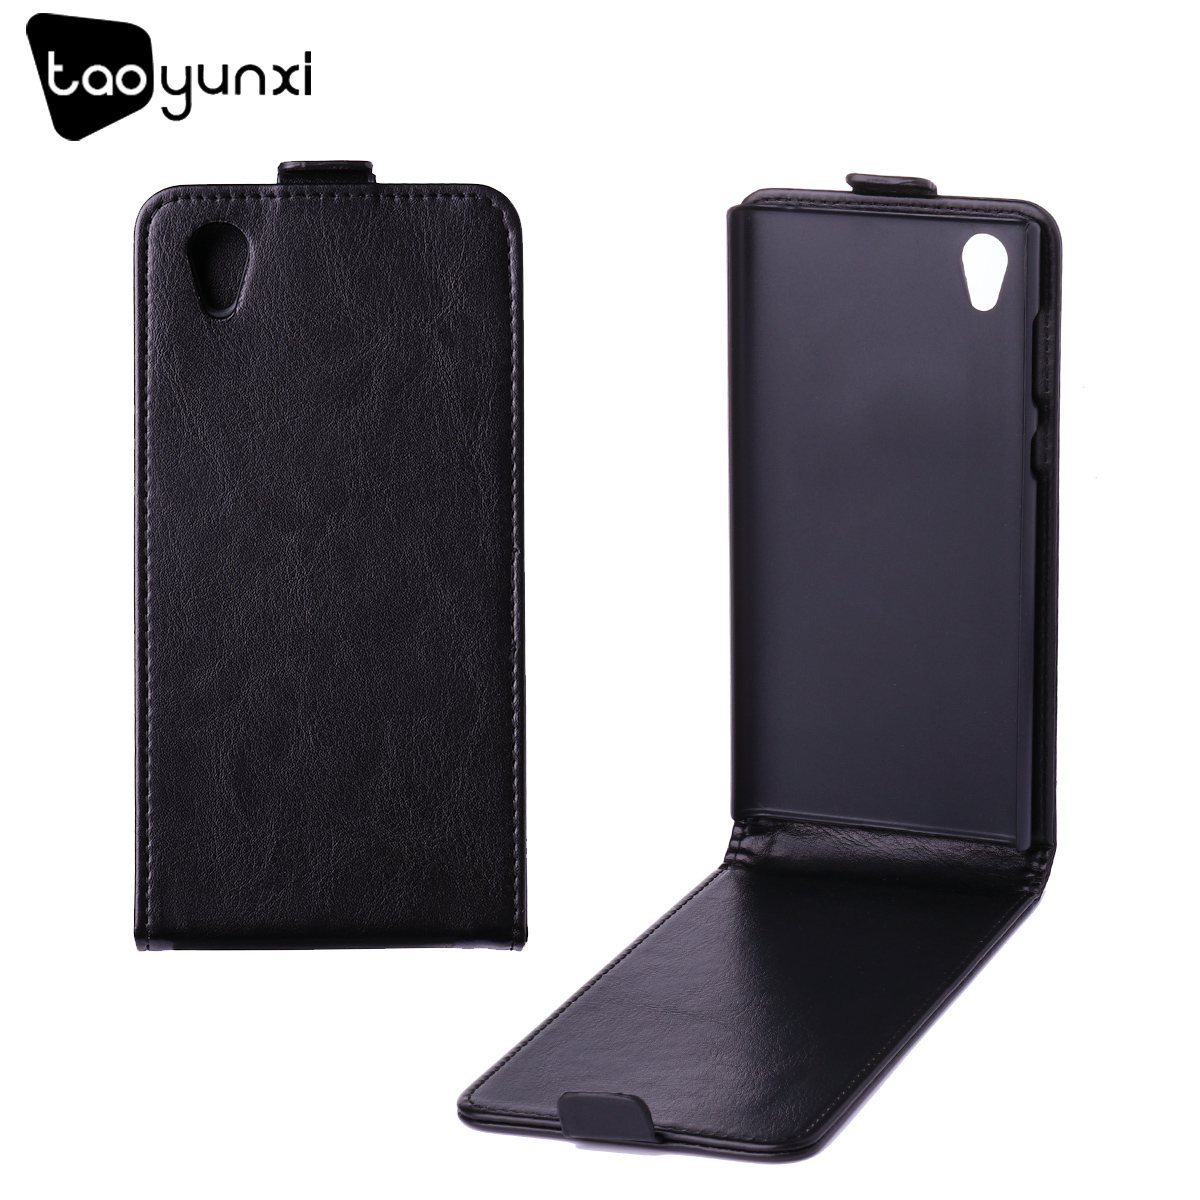 TAOYUNXI Flip Leather Phone Case For Sony Xperia L1 Sony L1 G3311 G3312 G3313 Sony Xperia E6 Dual 5.5 Inch Plastic Cover Fundas